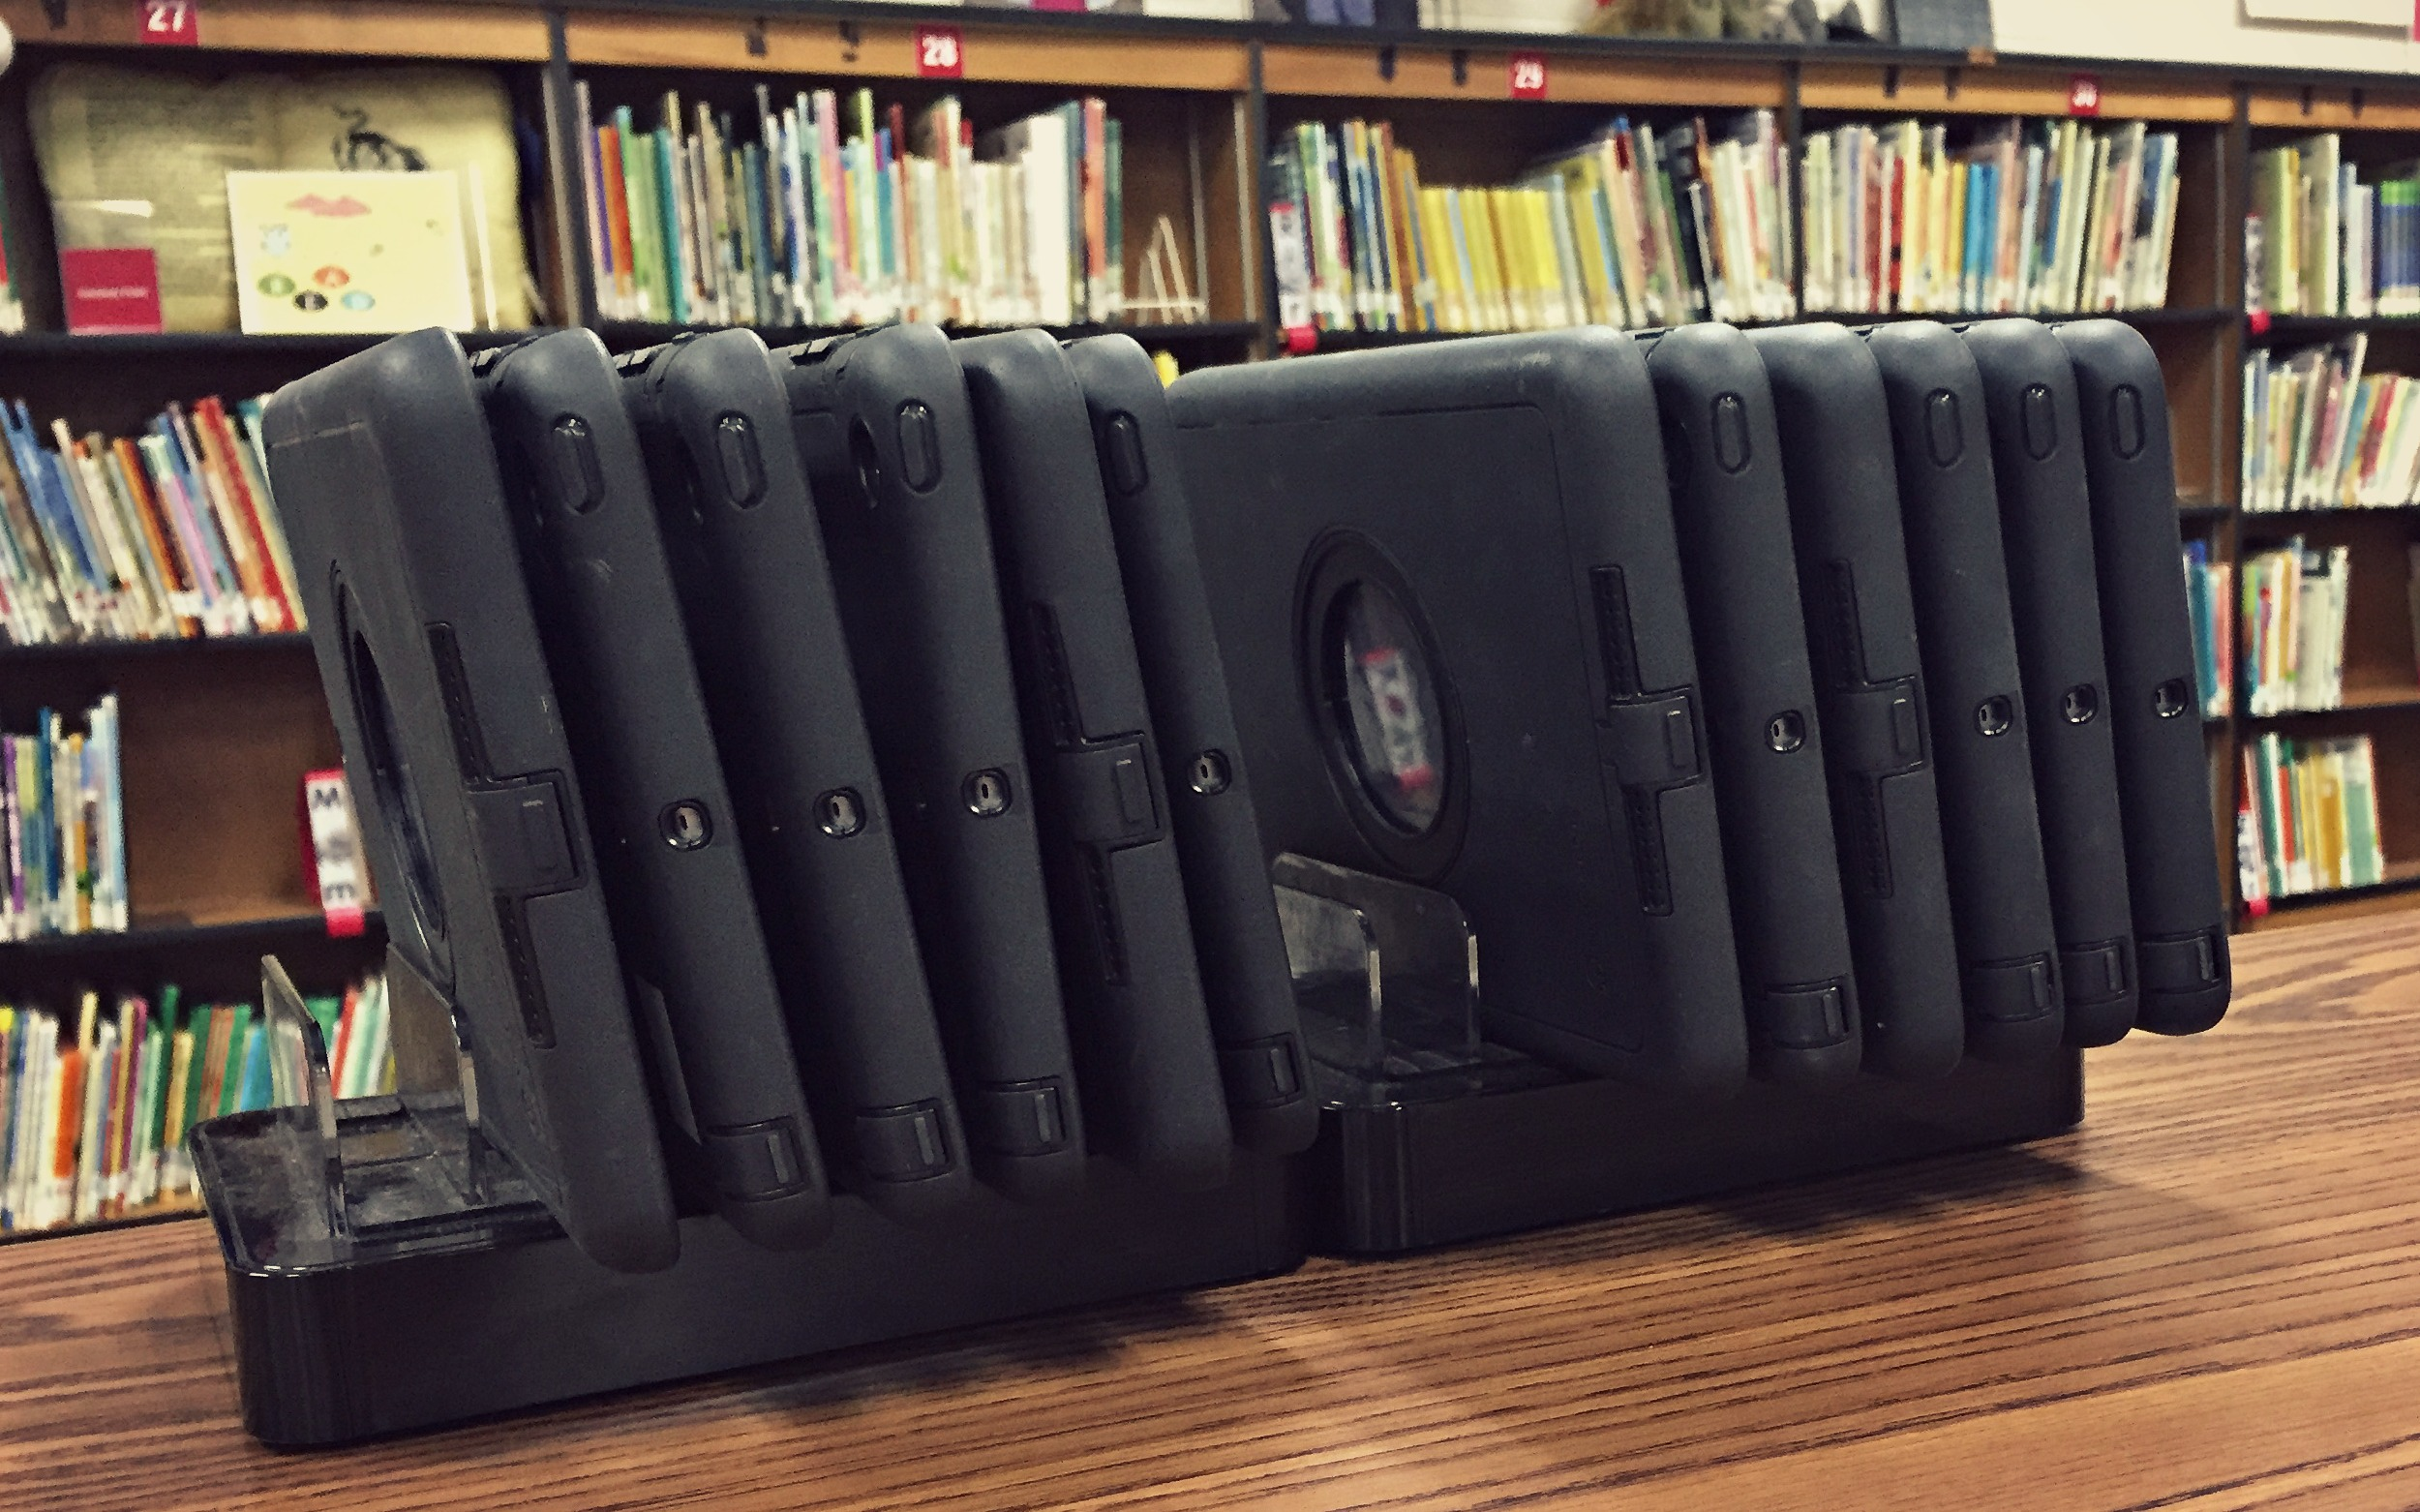 Picture of the library iPads.